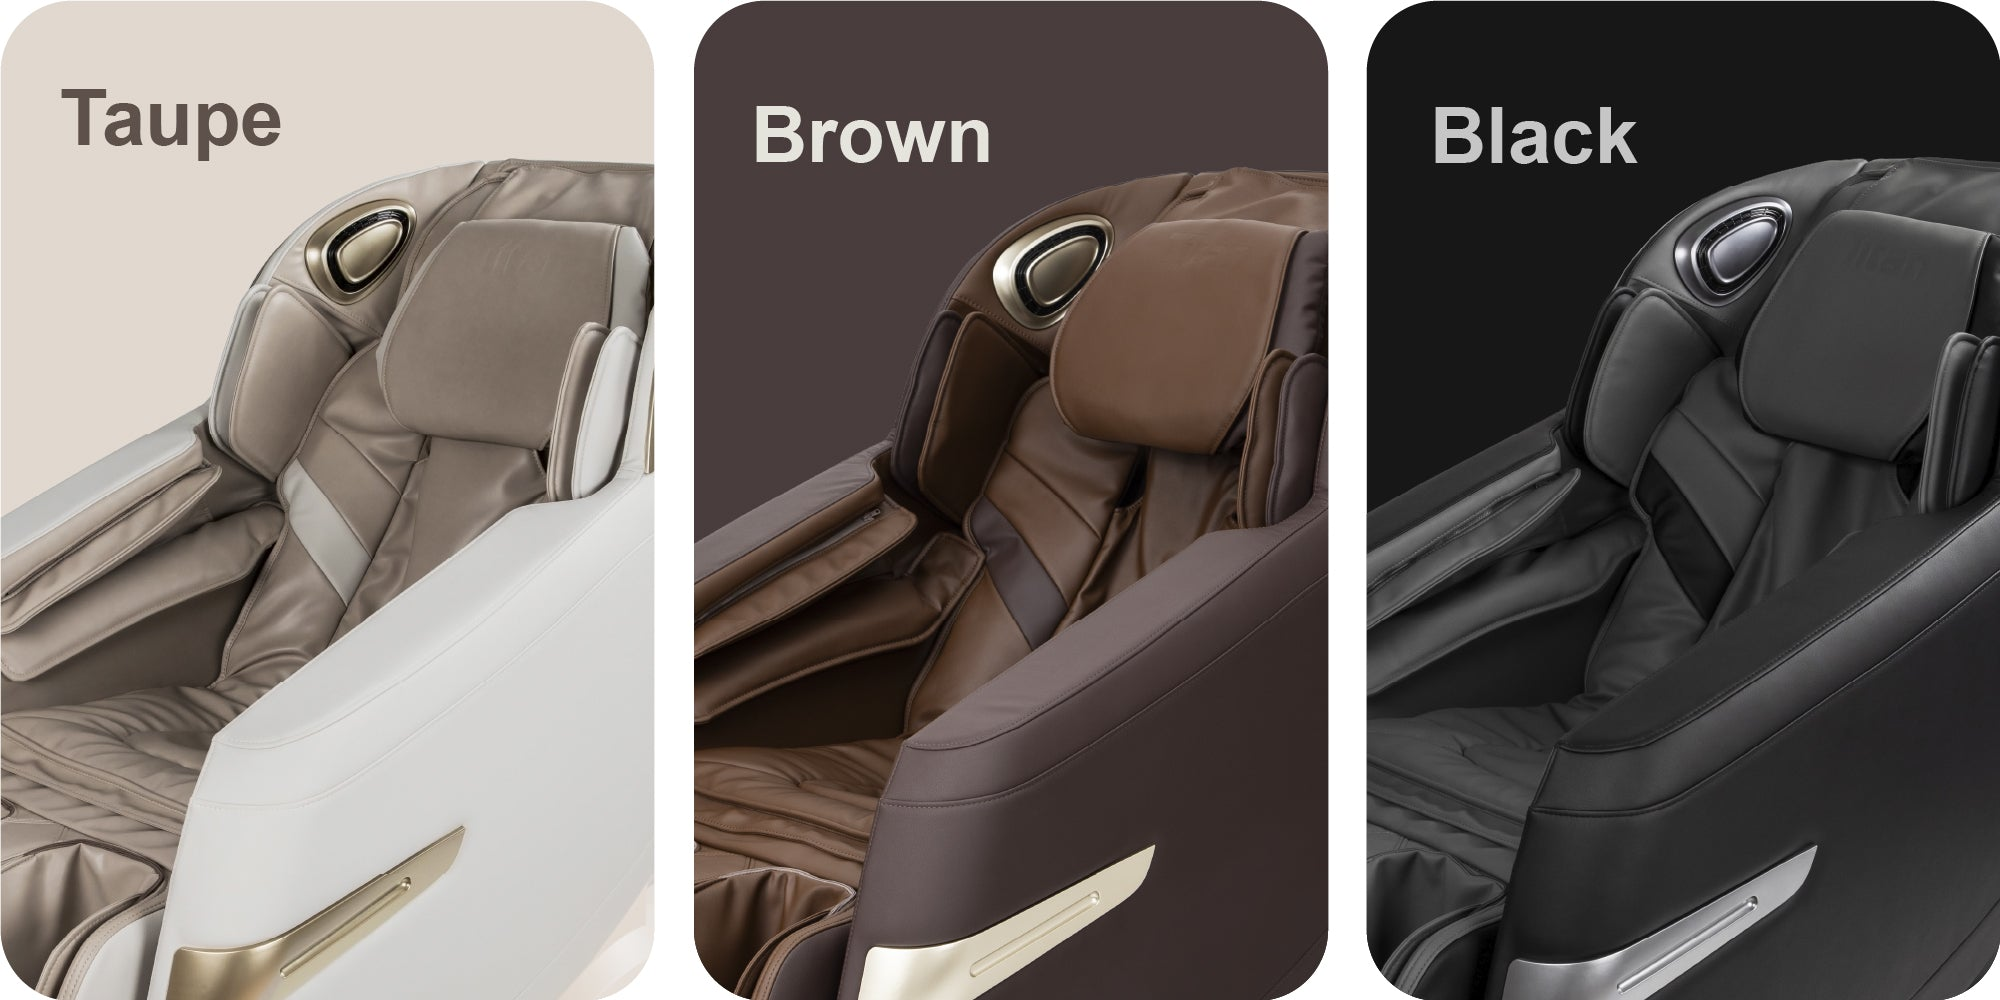 Taupe, Brown and Black colors